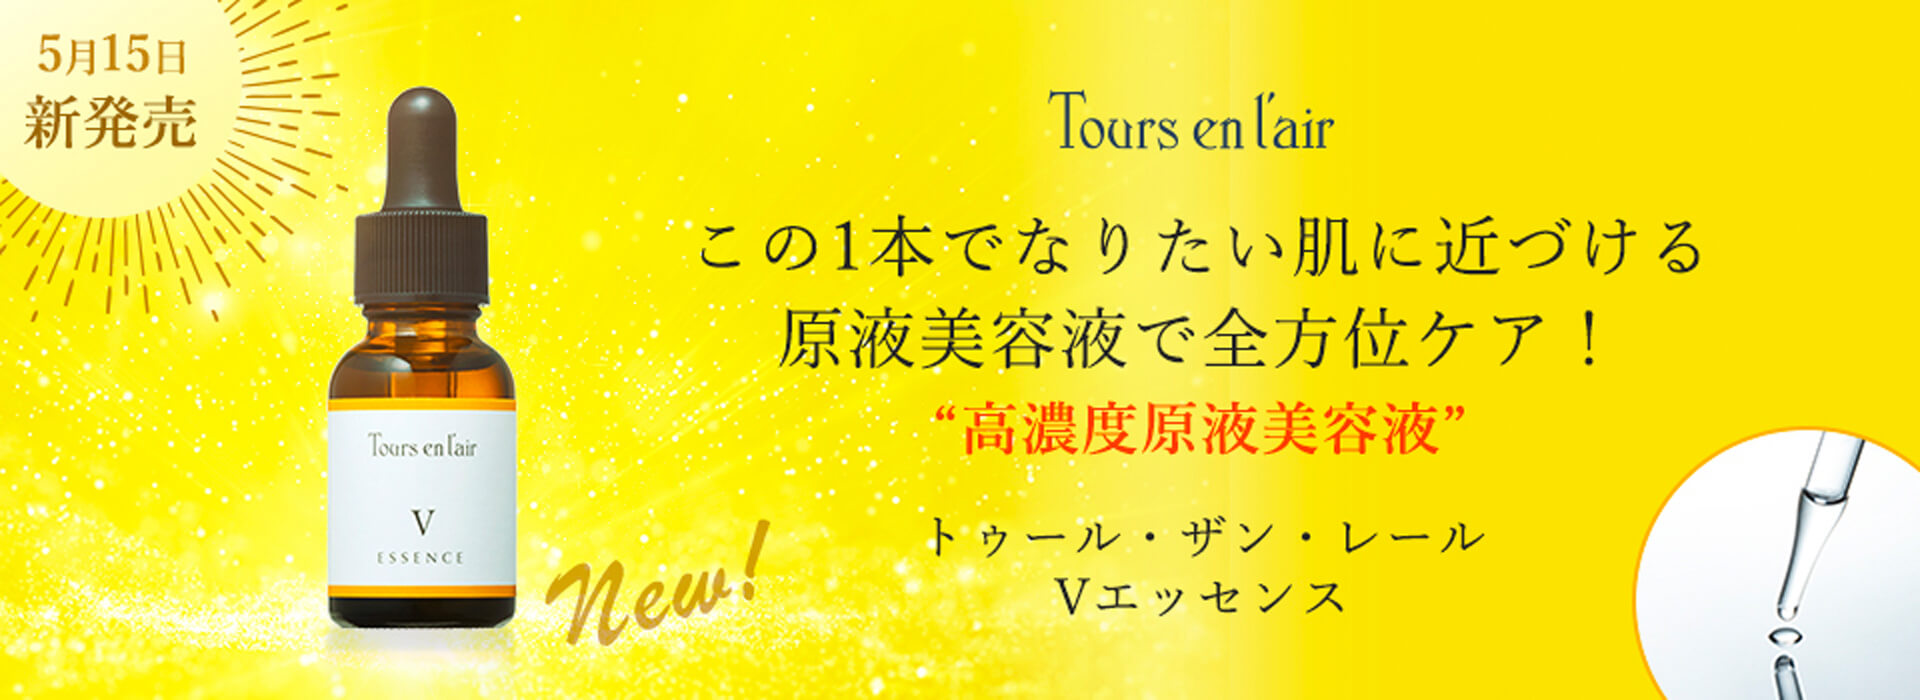 ririse eye serum